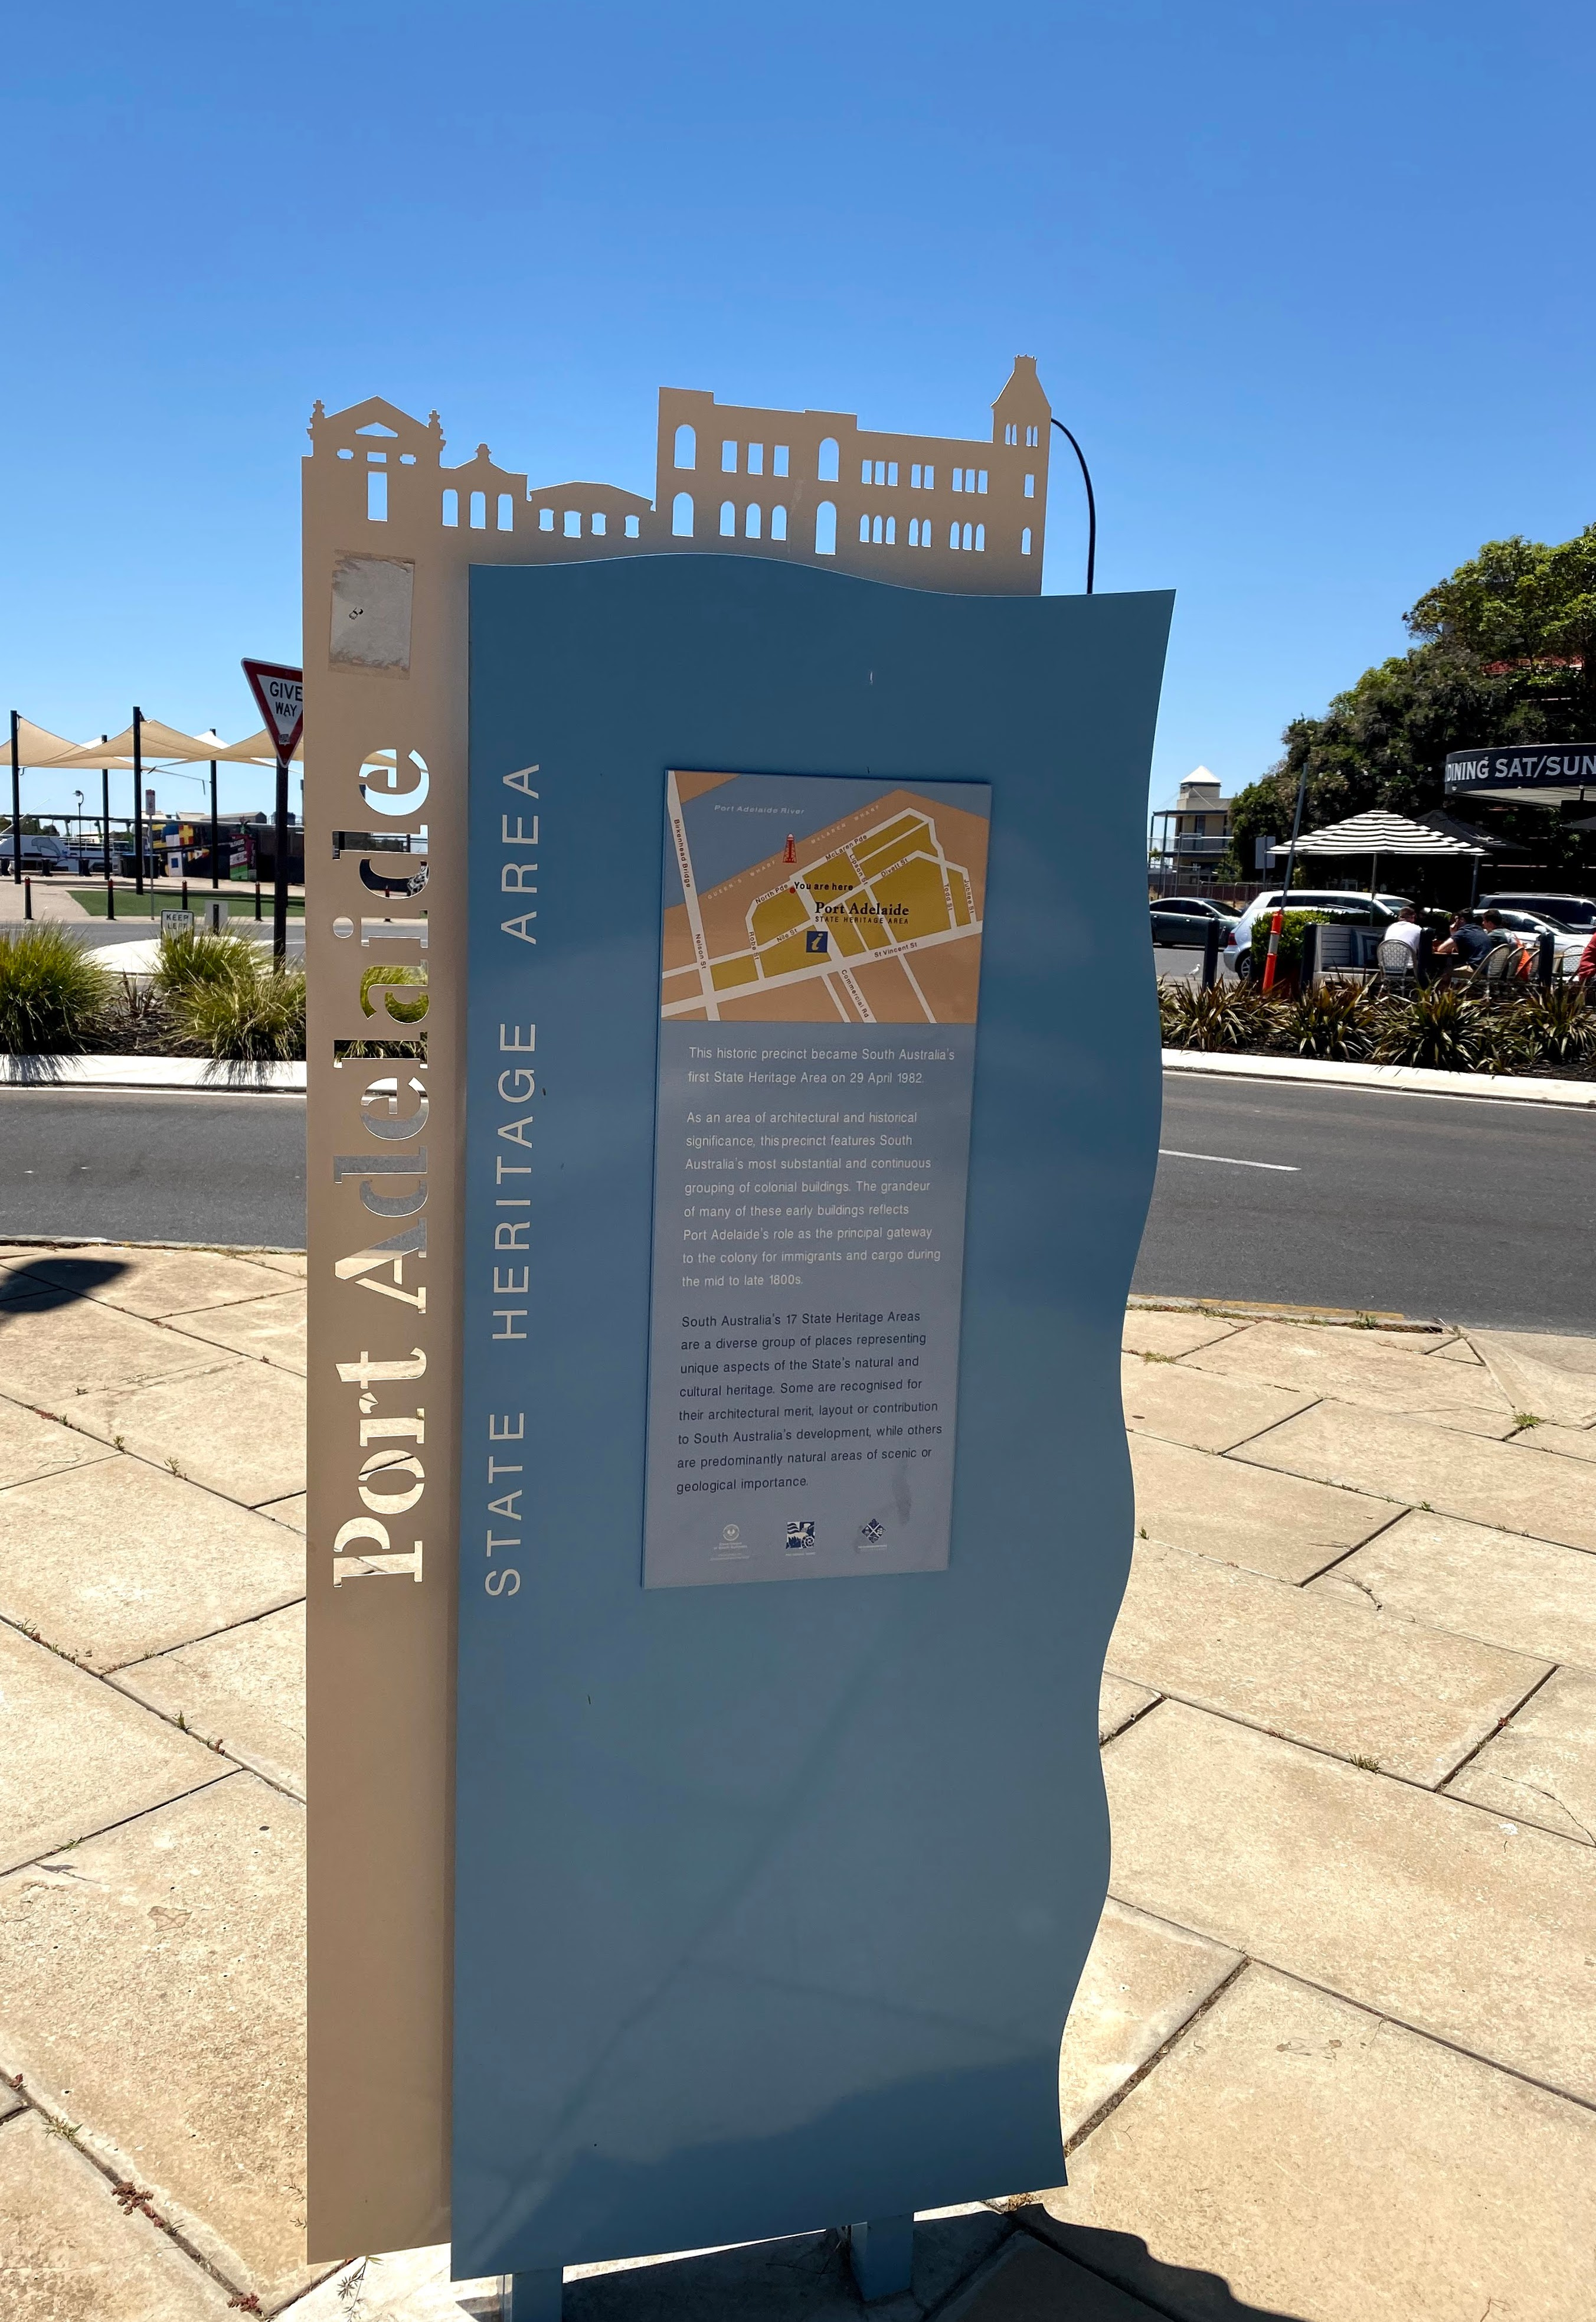 Port Adelaide state heritage area board